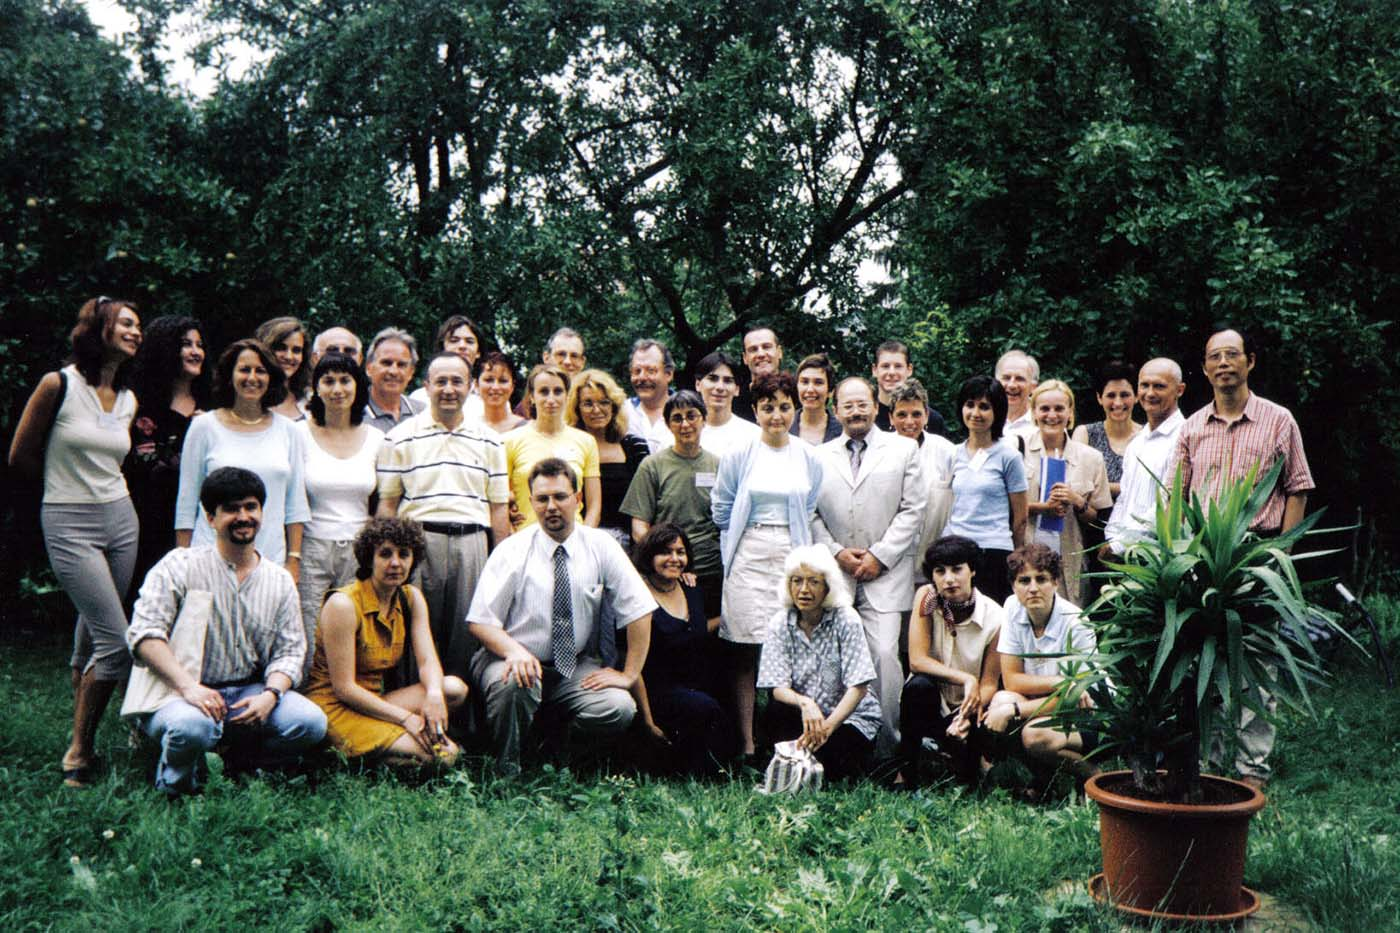 The first Training for Trainers for Positive Psychotherapy Conference in 2000 in my house in my hometown Buedingen (Germany), the starting point of a yearly tradition later to share and widen the knowledge and training quality in PPT